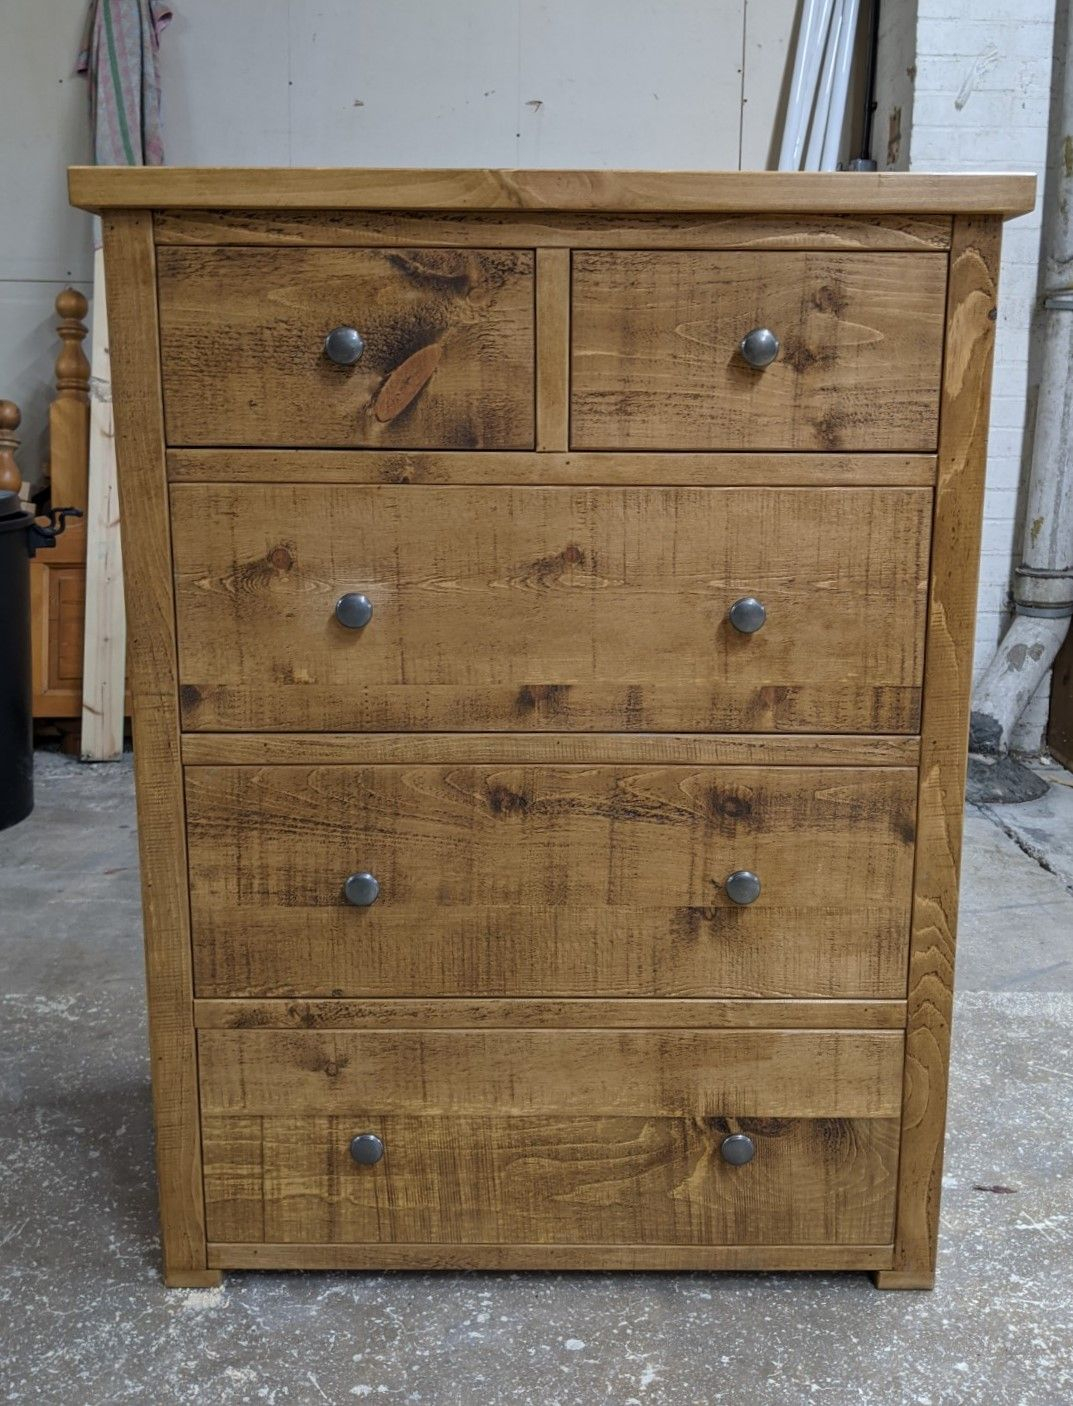 Bespoke Rustic Pine Wood Chest Of Drawers Wood Chest Pine Furniture Pewter Handles Real wood chest of drawers